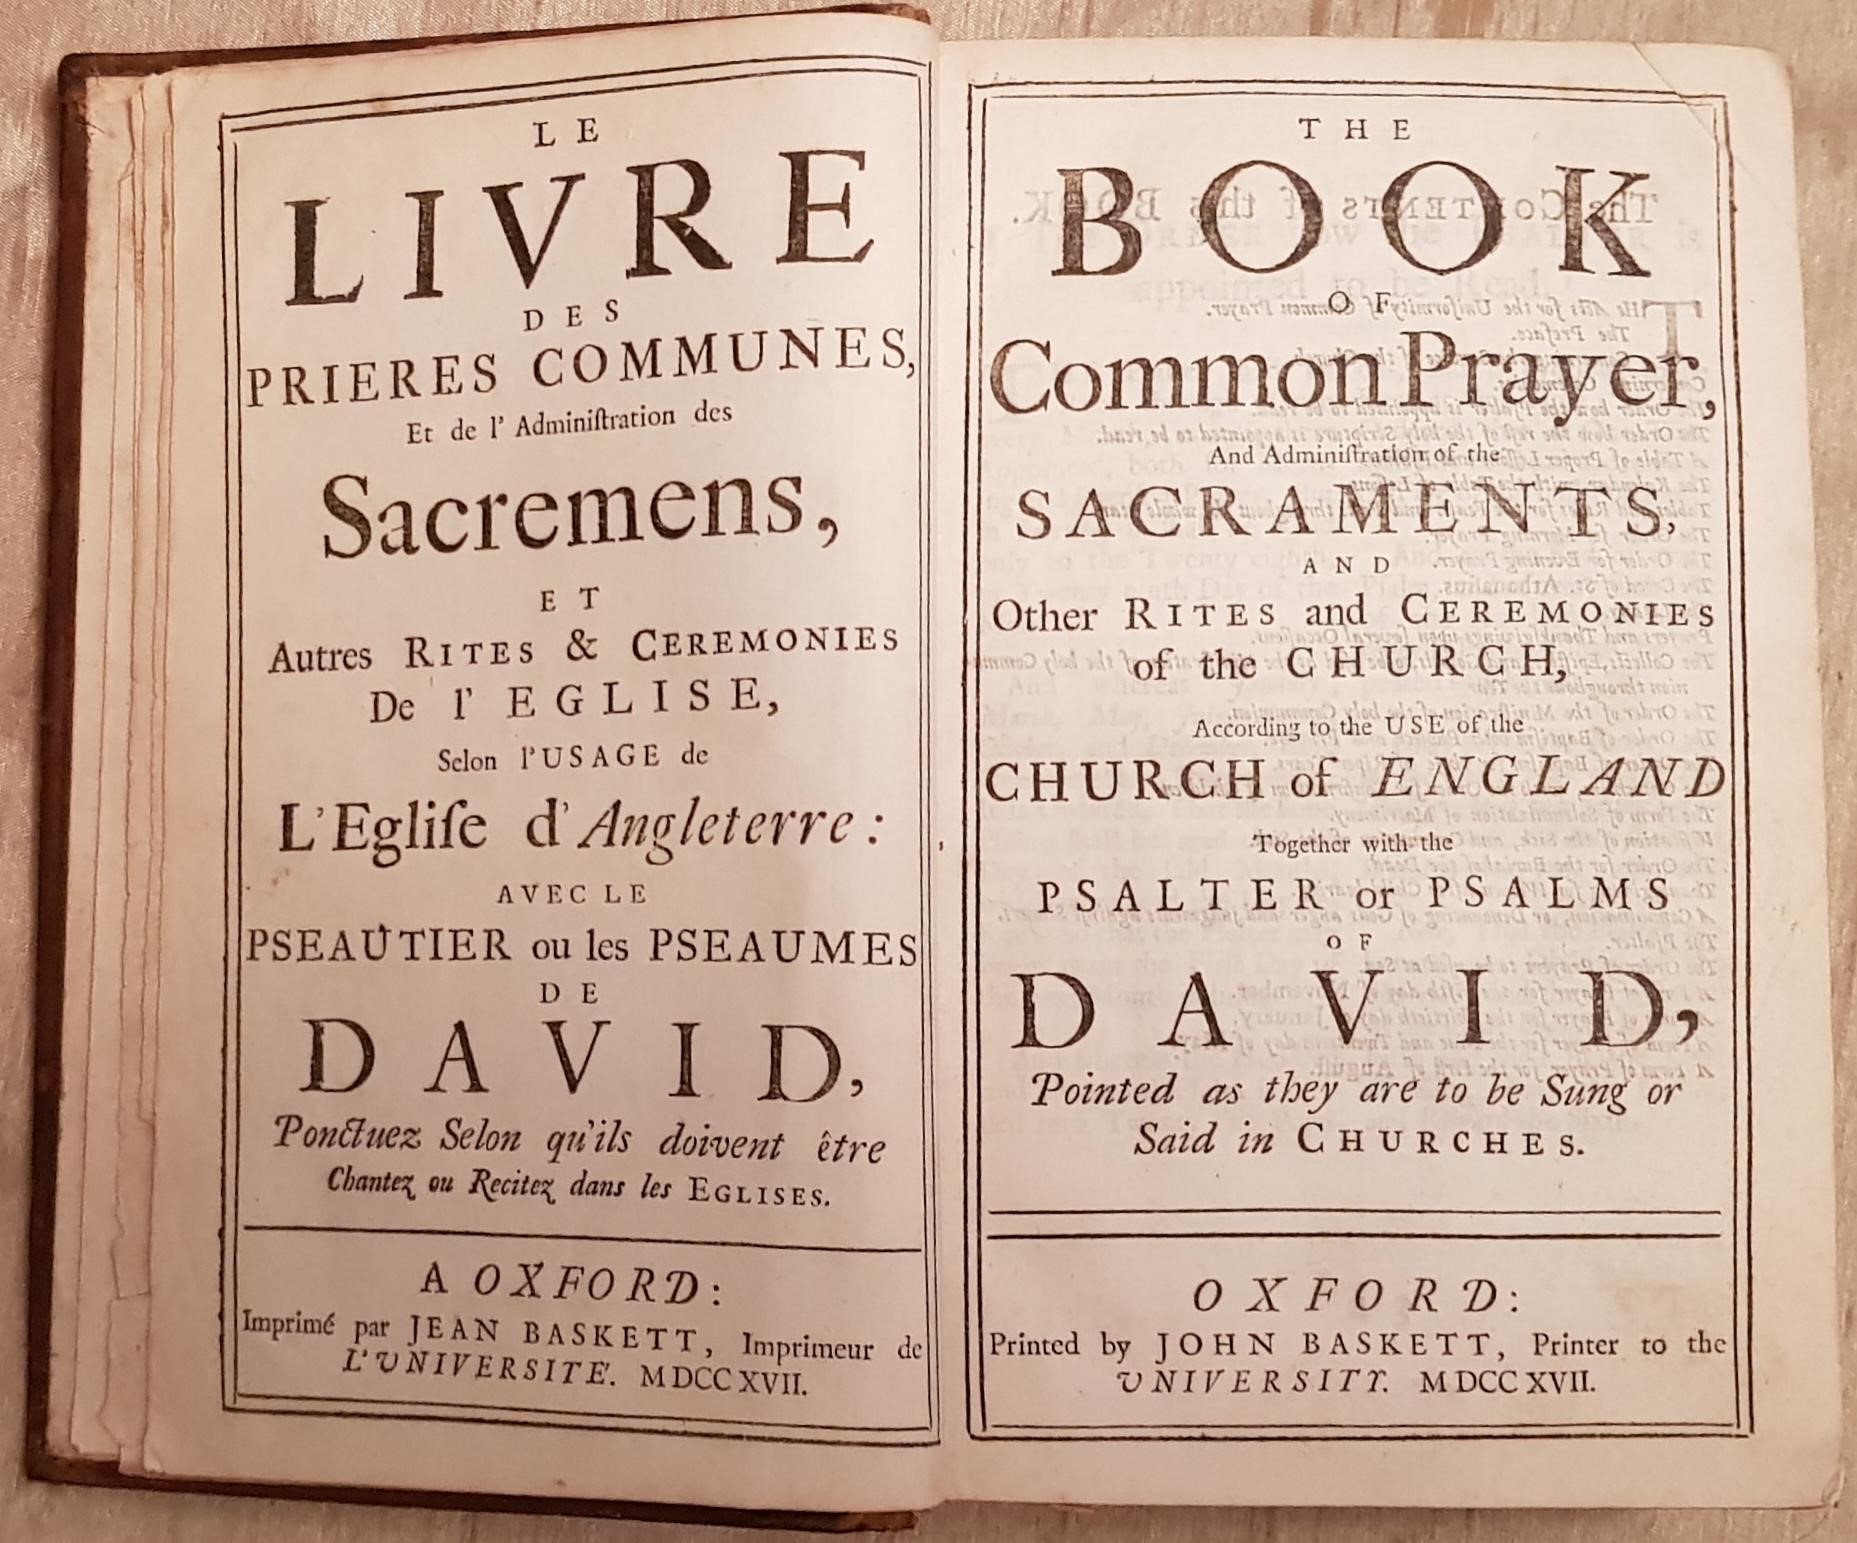 Image for The Book Of Common Prayer, And Administration of the Sacraments... / Le Livre Des Prieres Communes, Et de l'Administration des Sacramens... / A New Version of The Psalms Of David...